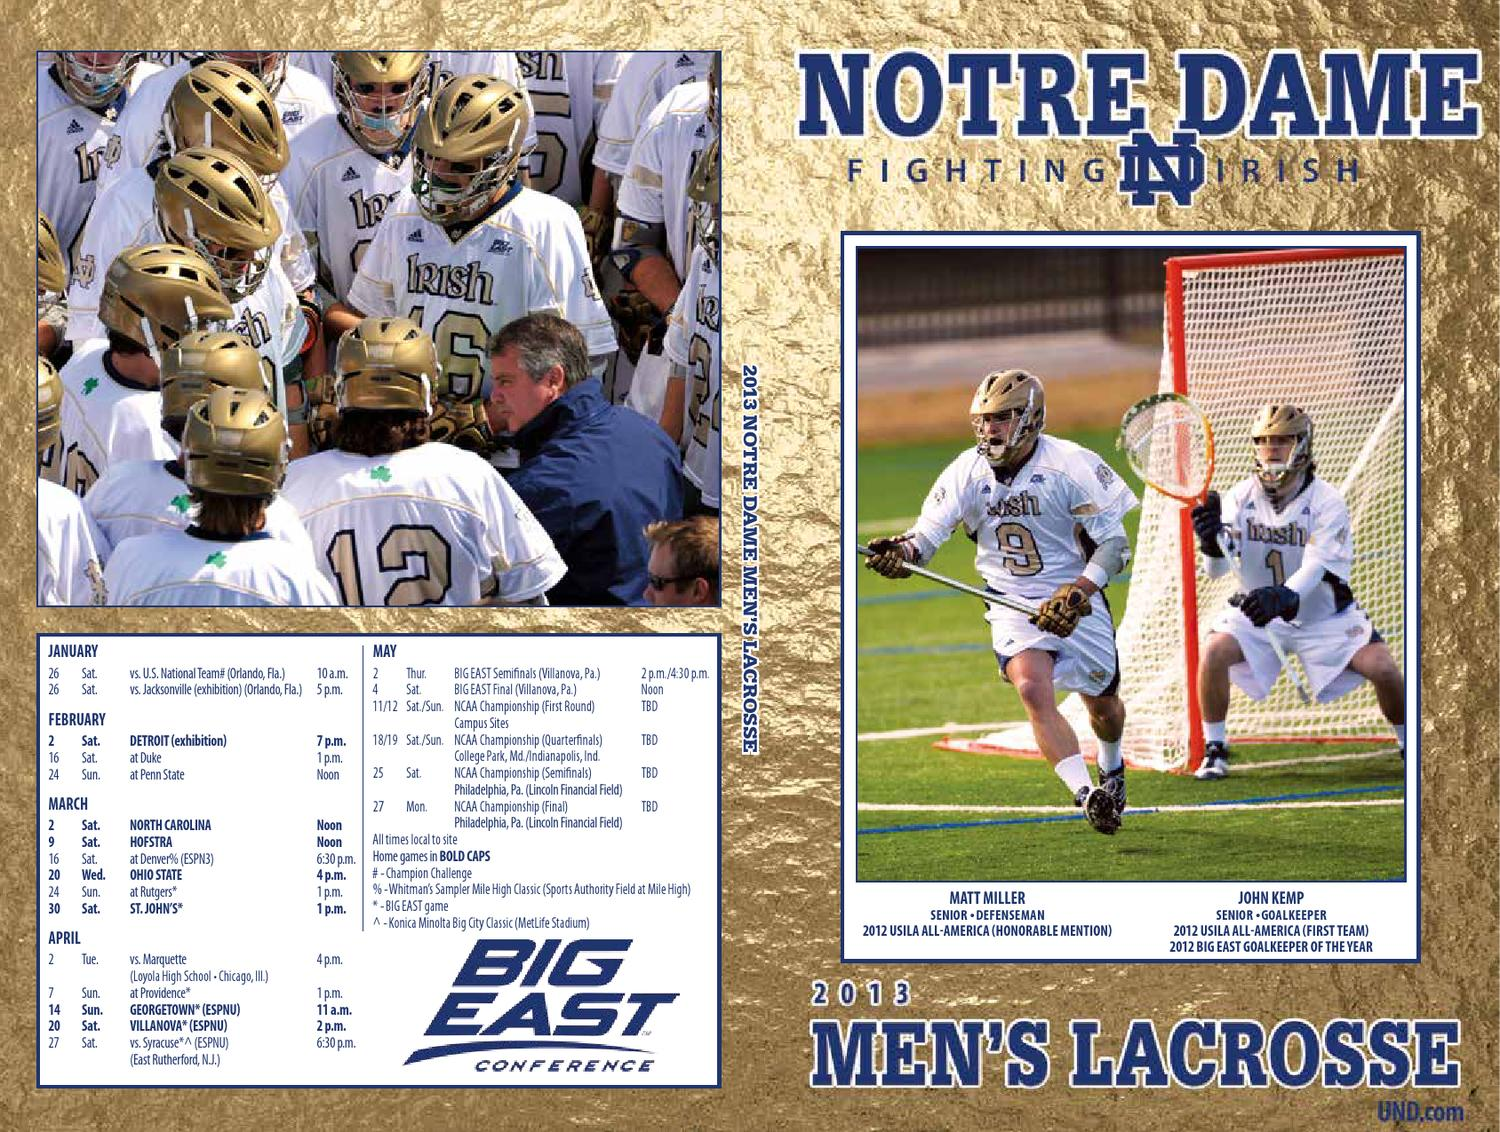 2013 University of Notre Dame Men's Lacrosse Media Guide by